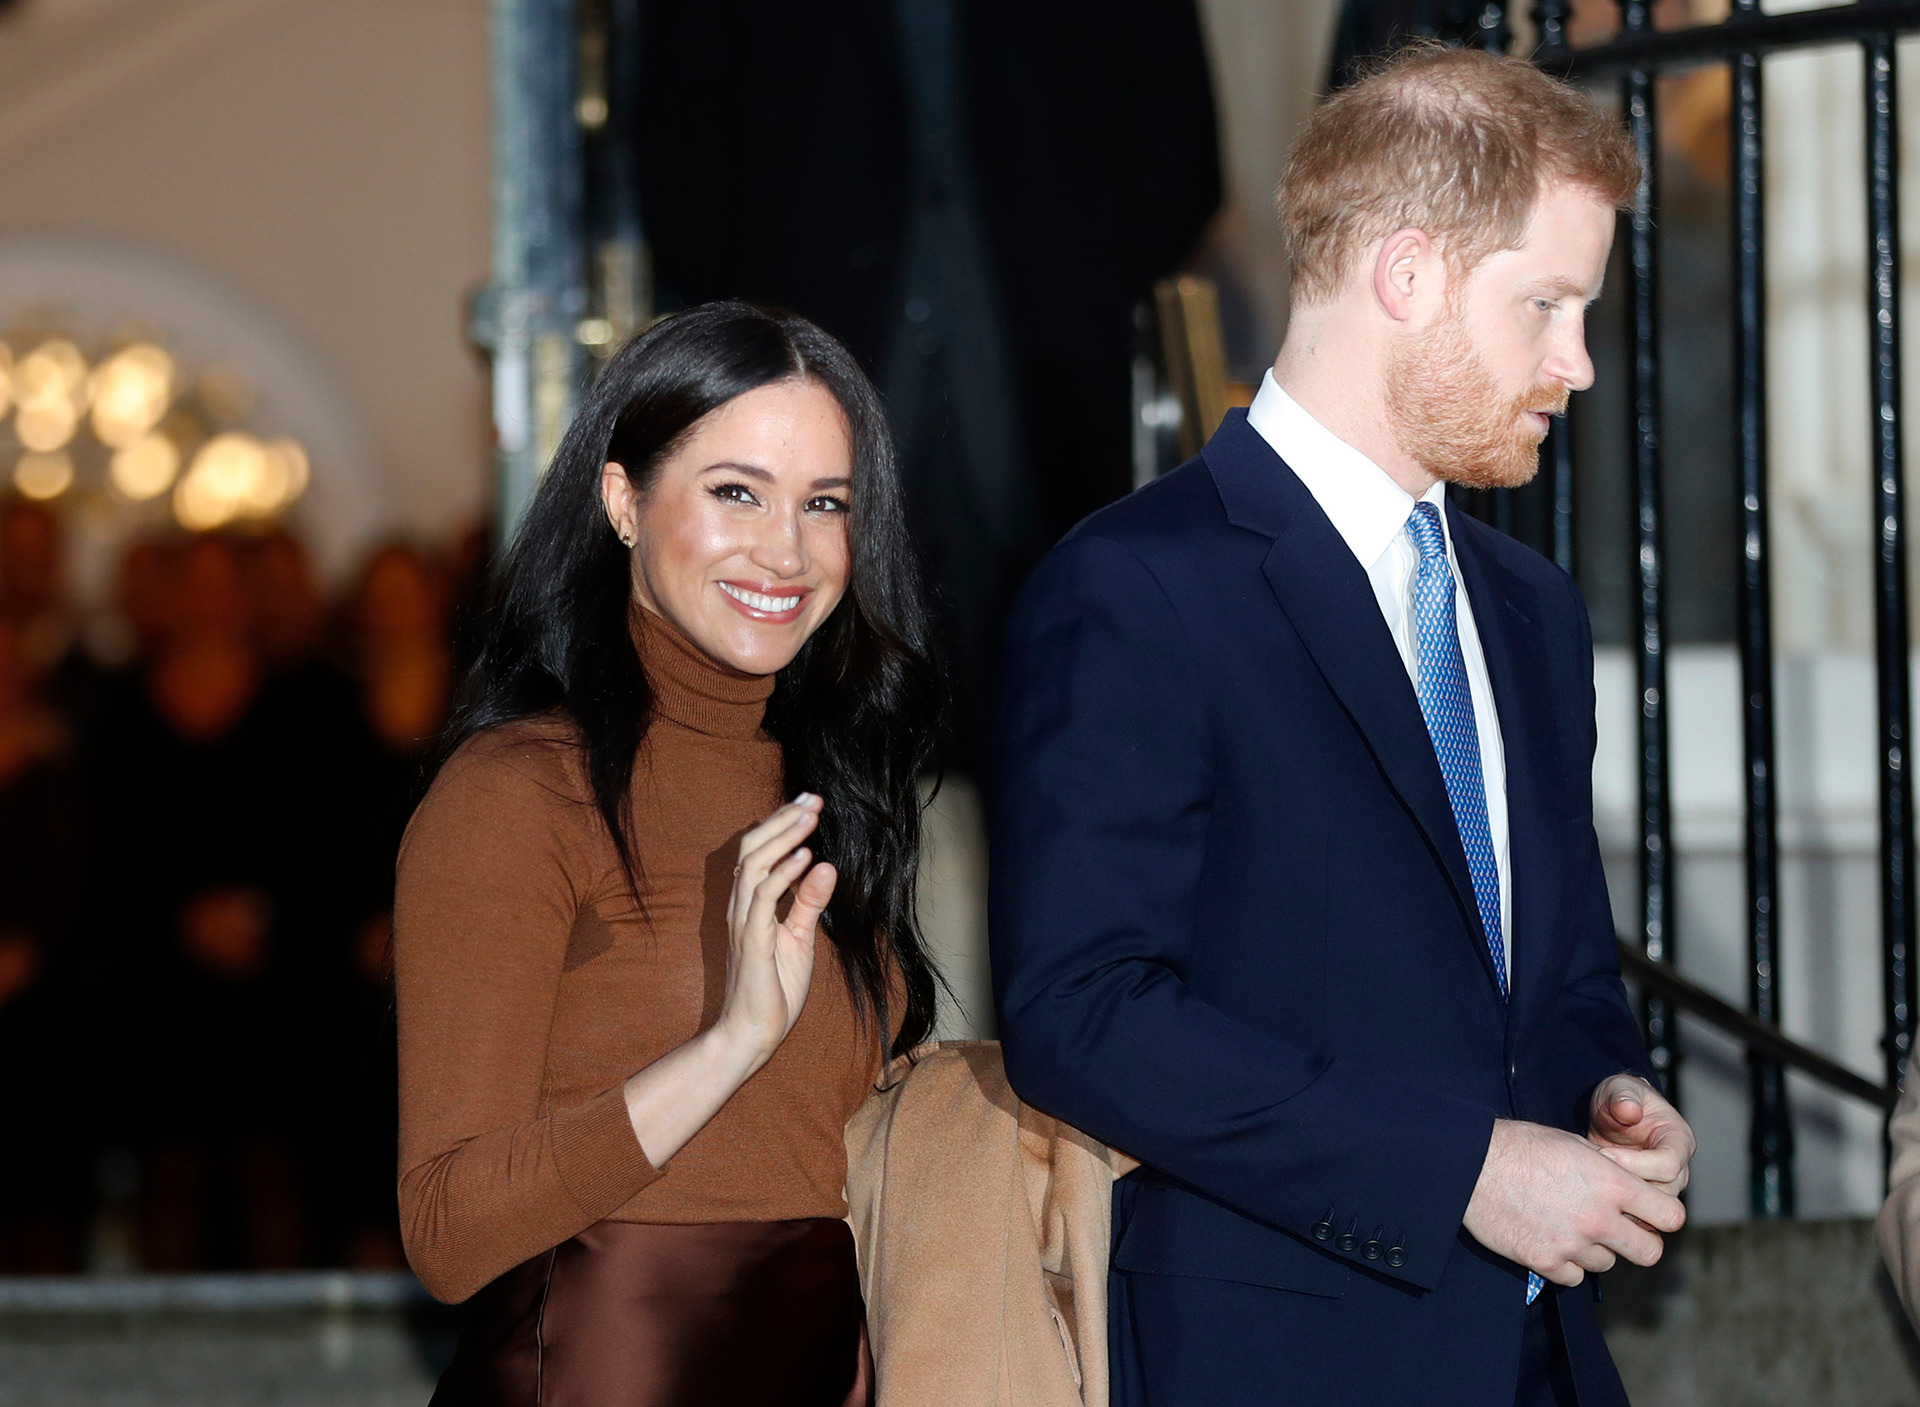 'A taste of things to come': Photos that show irony of Meghan's new life